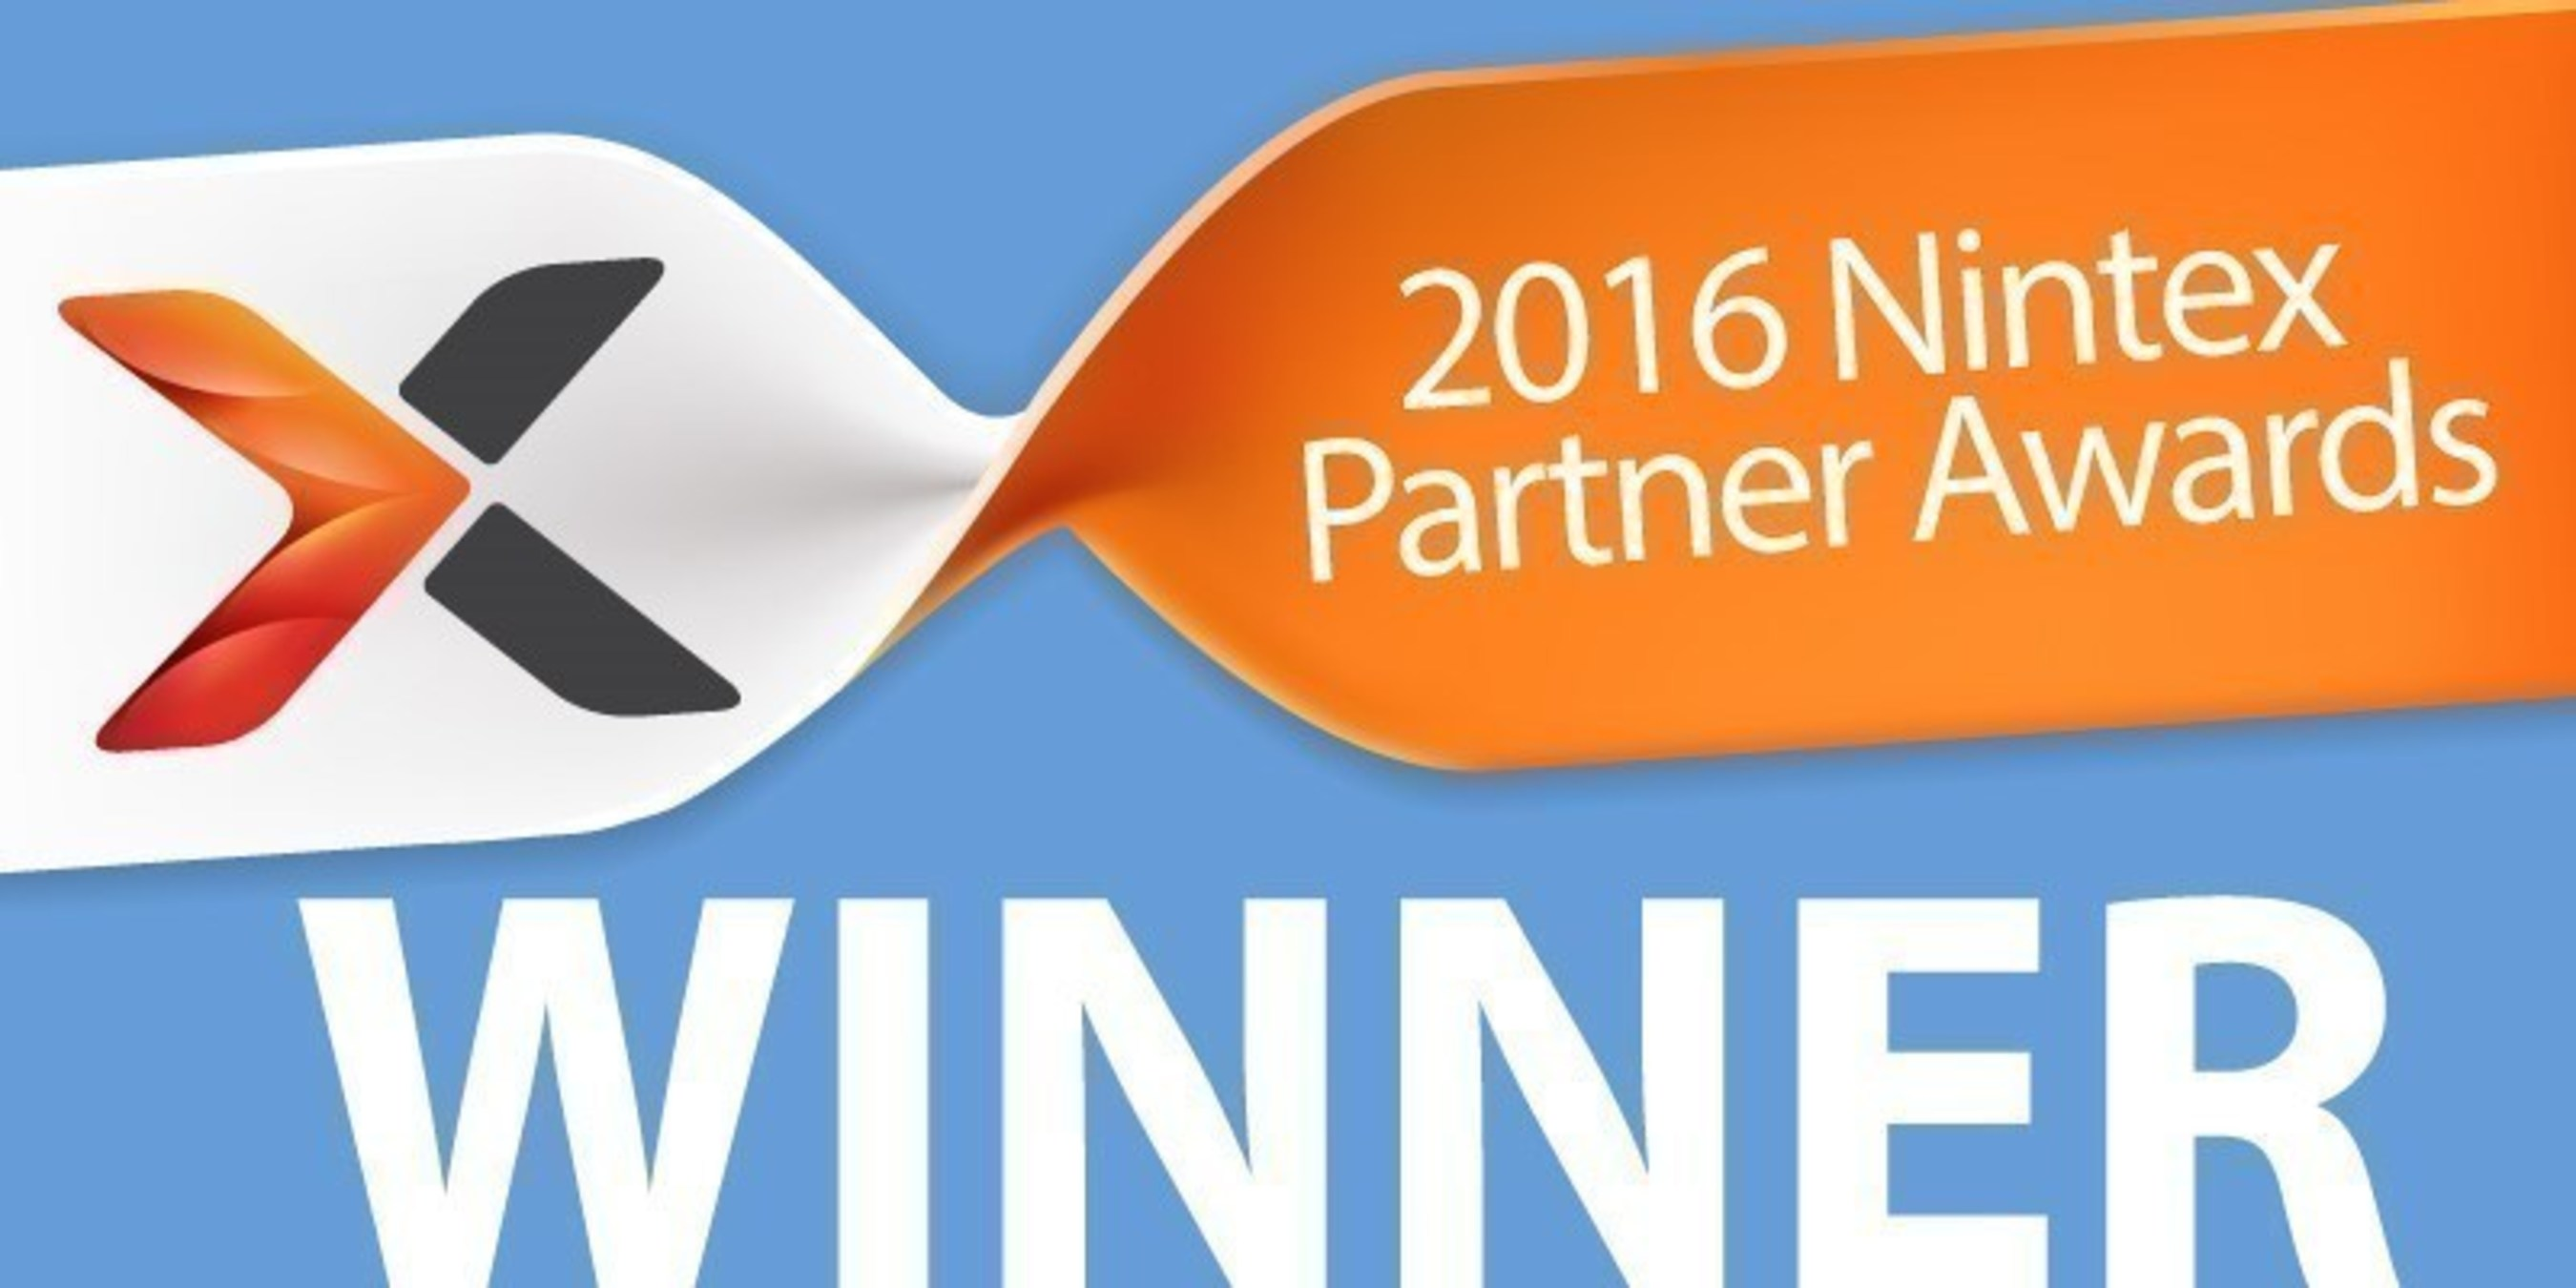 """In its fifth year, the Nintex Partner Awards recognize the valuable contributions channel partners--resellers, value added resellers (VARs), system integrators (SIs), independent software vendors (ISVs)--have made in helping organizations of all sizes, in every industry, automate workflows and the generation of documents to improve how business gets done. To learn more about successful Nintex partners, download the new e-book """"Partner with Nintex: The path to profitability"""" at http://www.nintex.com..."""